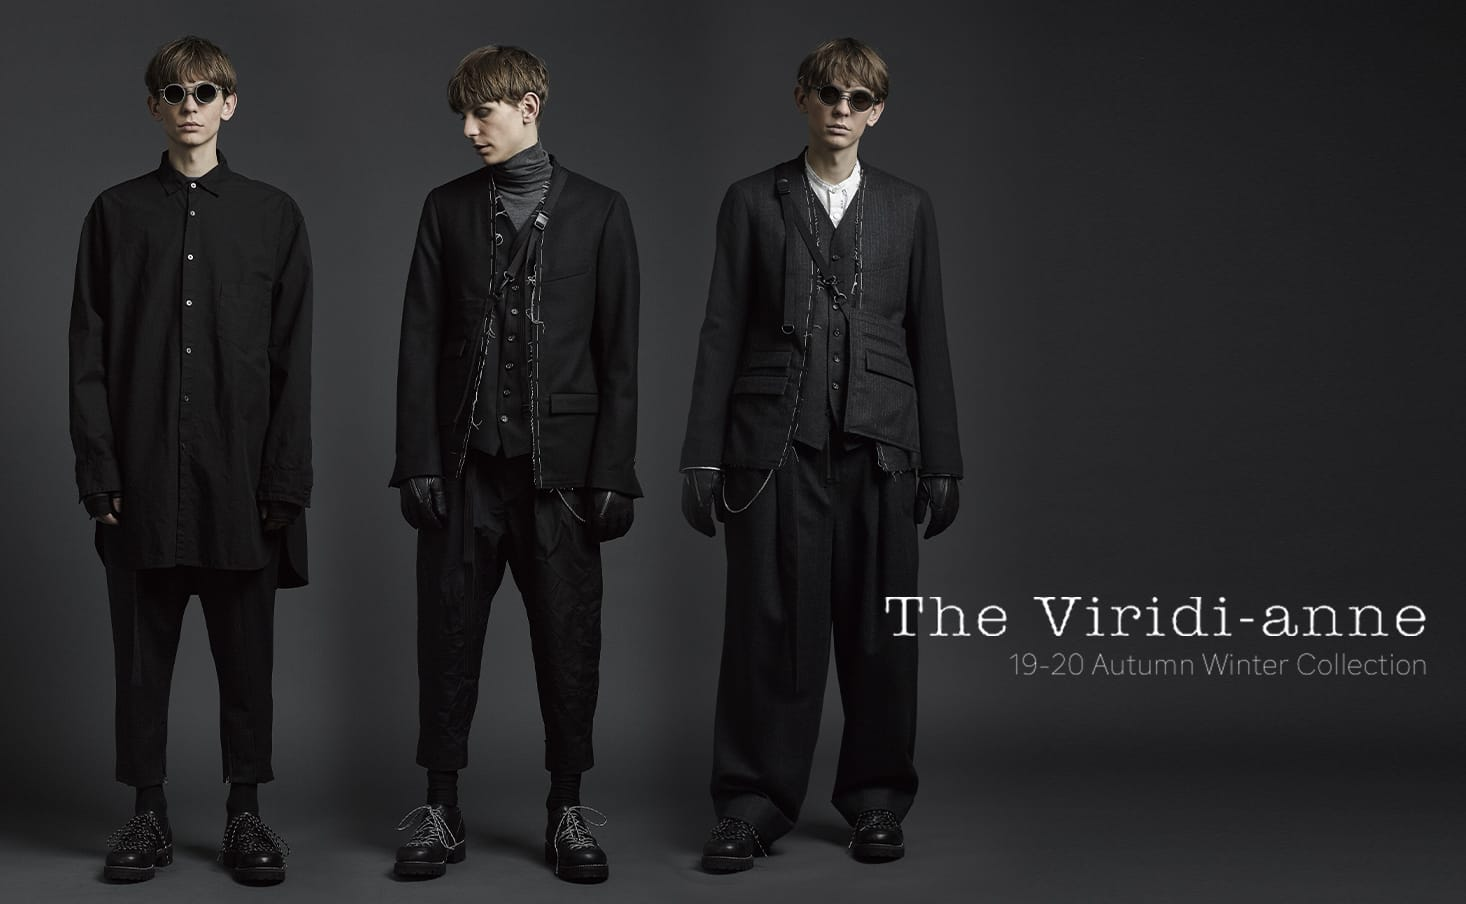 The Viridi-anne 2019-20AW Collection